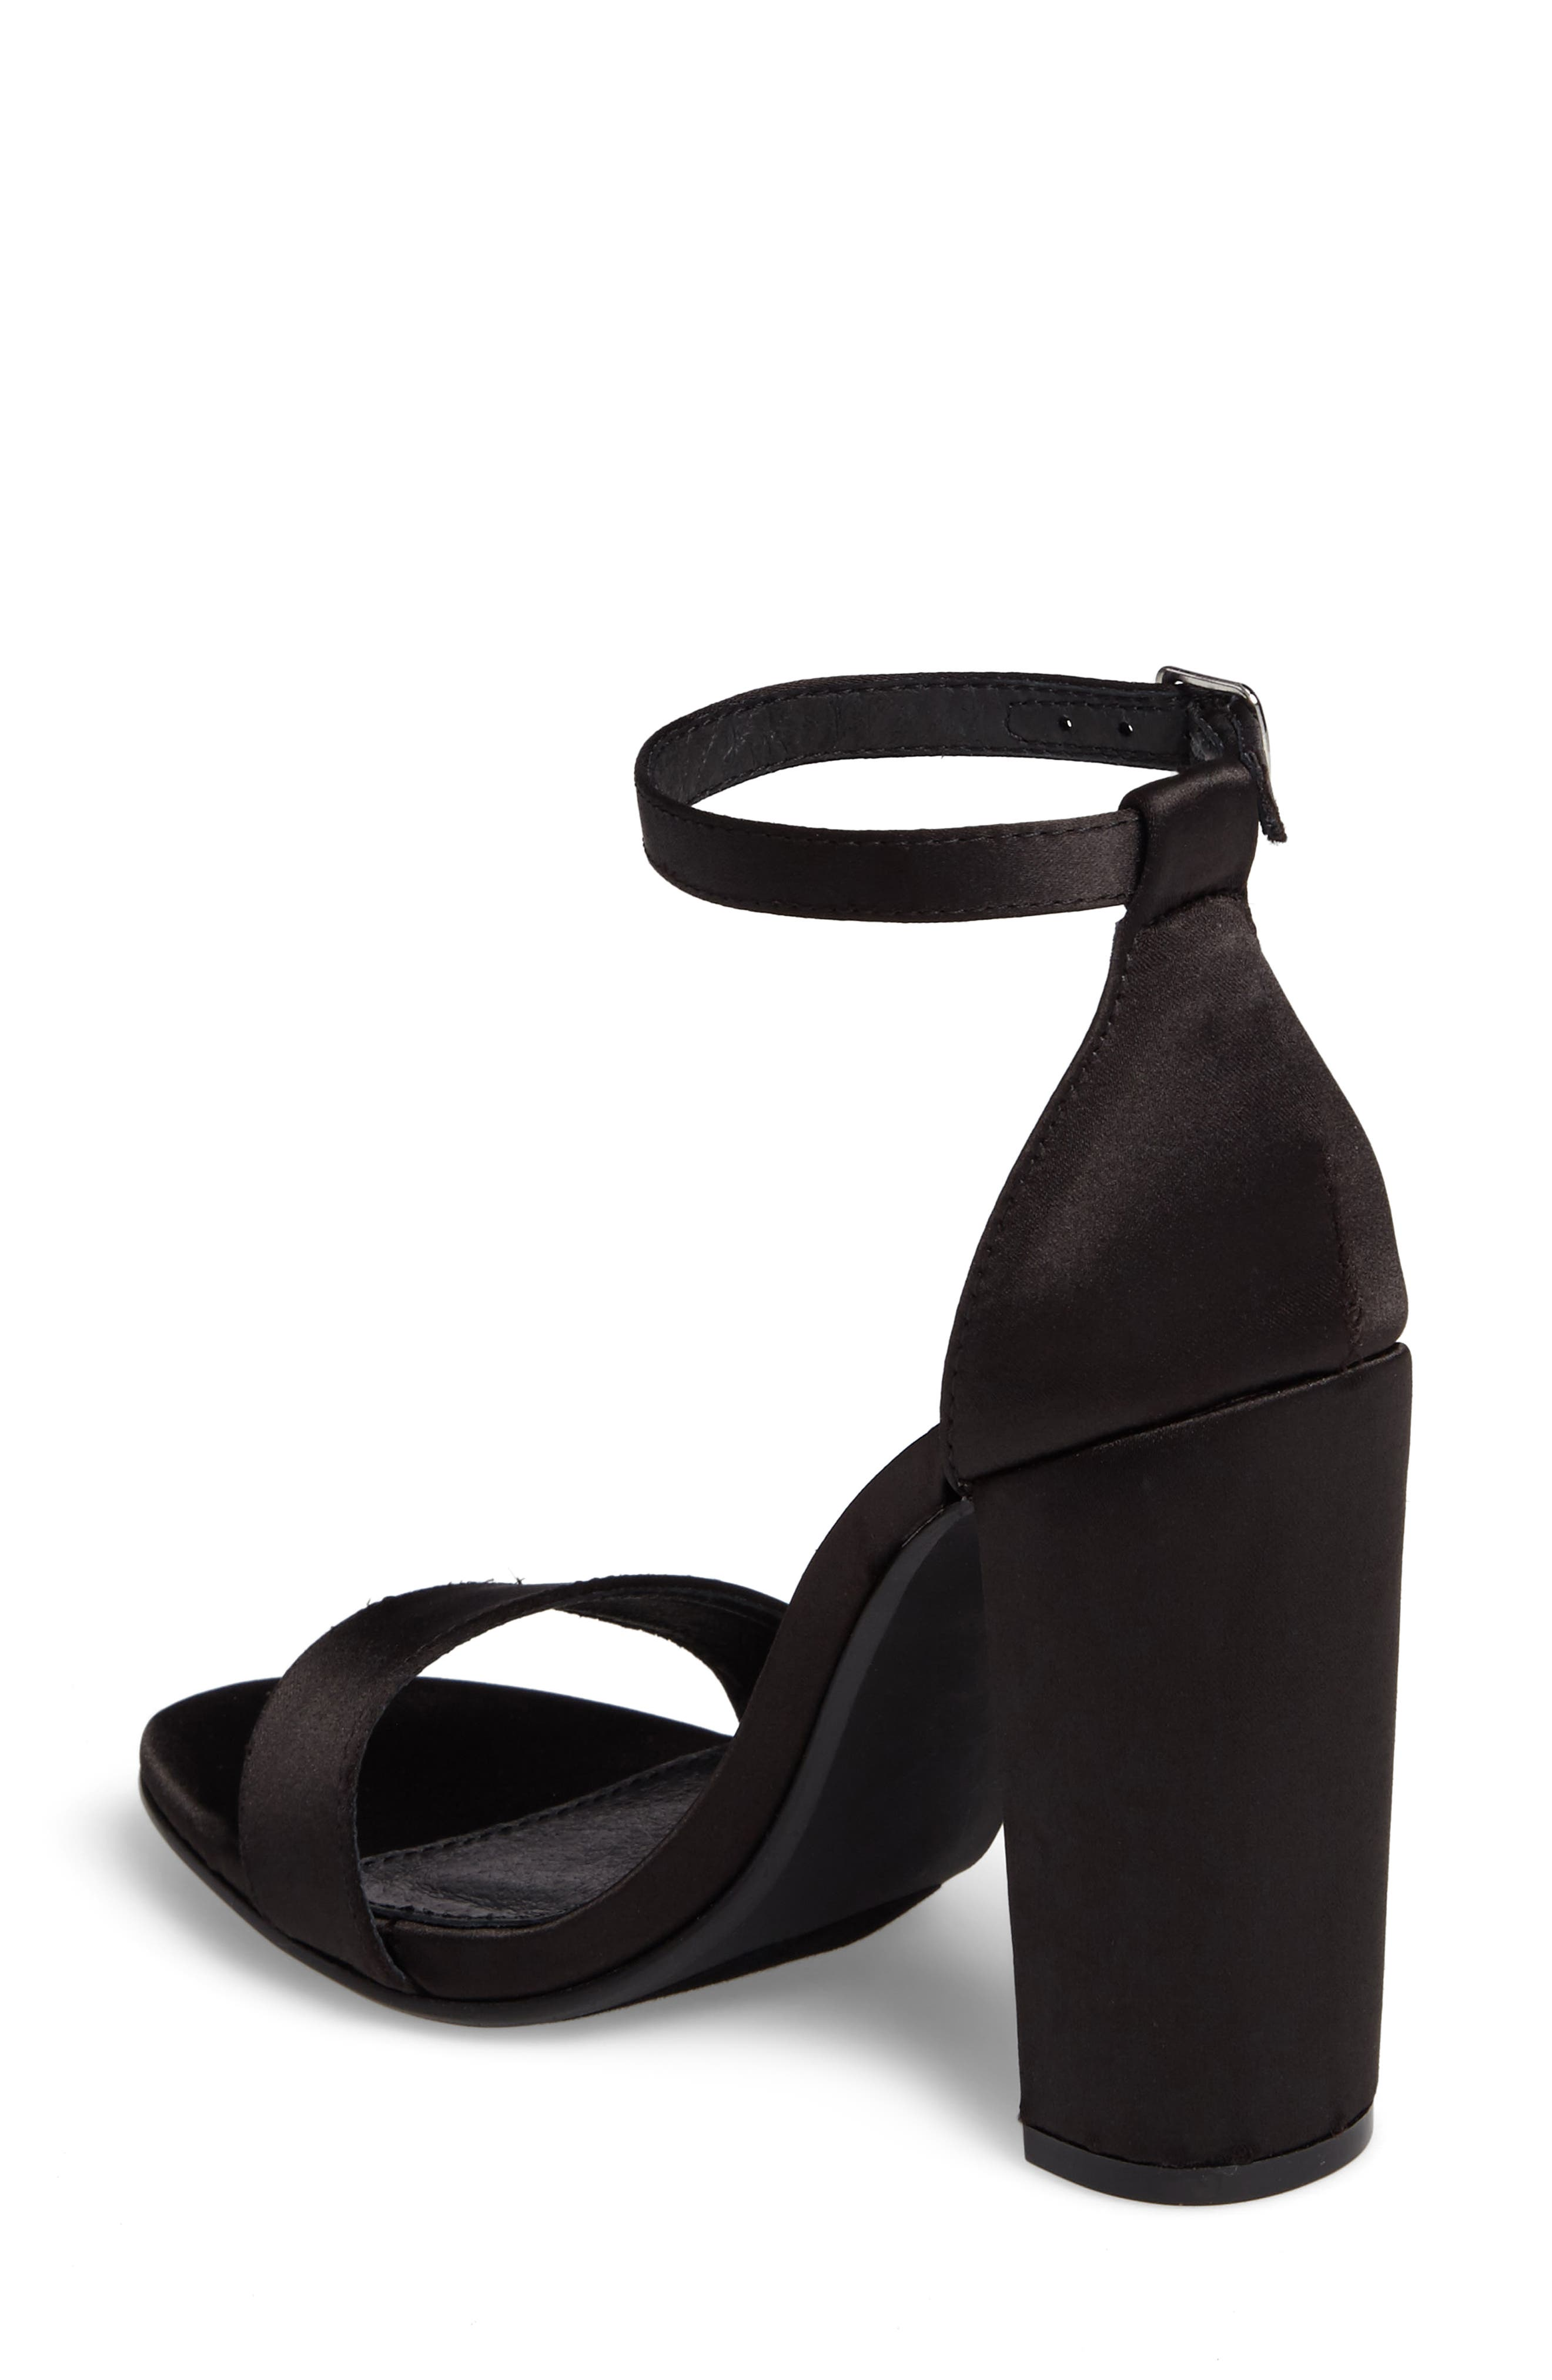 Black sandals with straps - Black Sandals With Straps 25